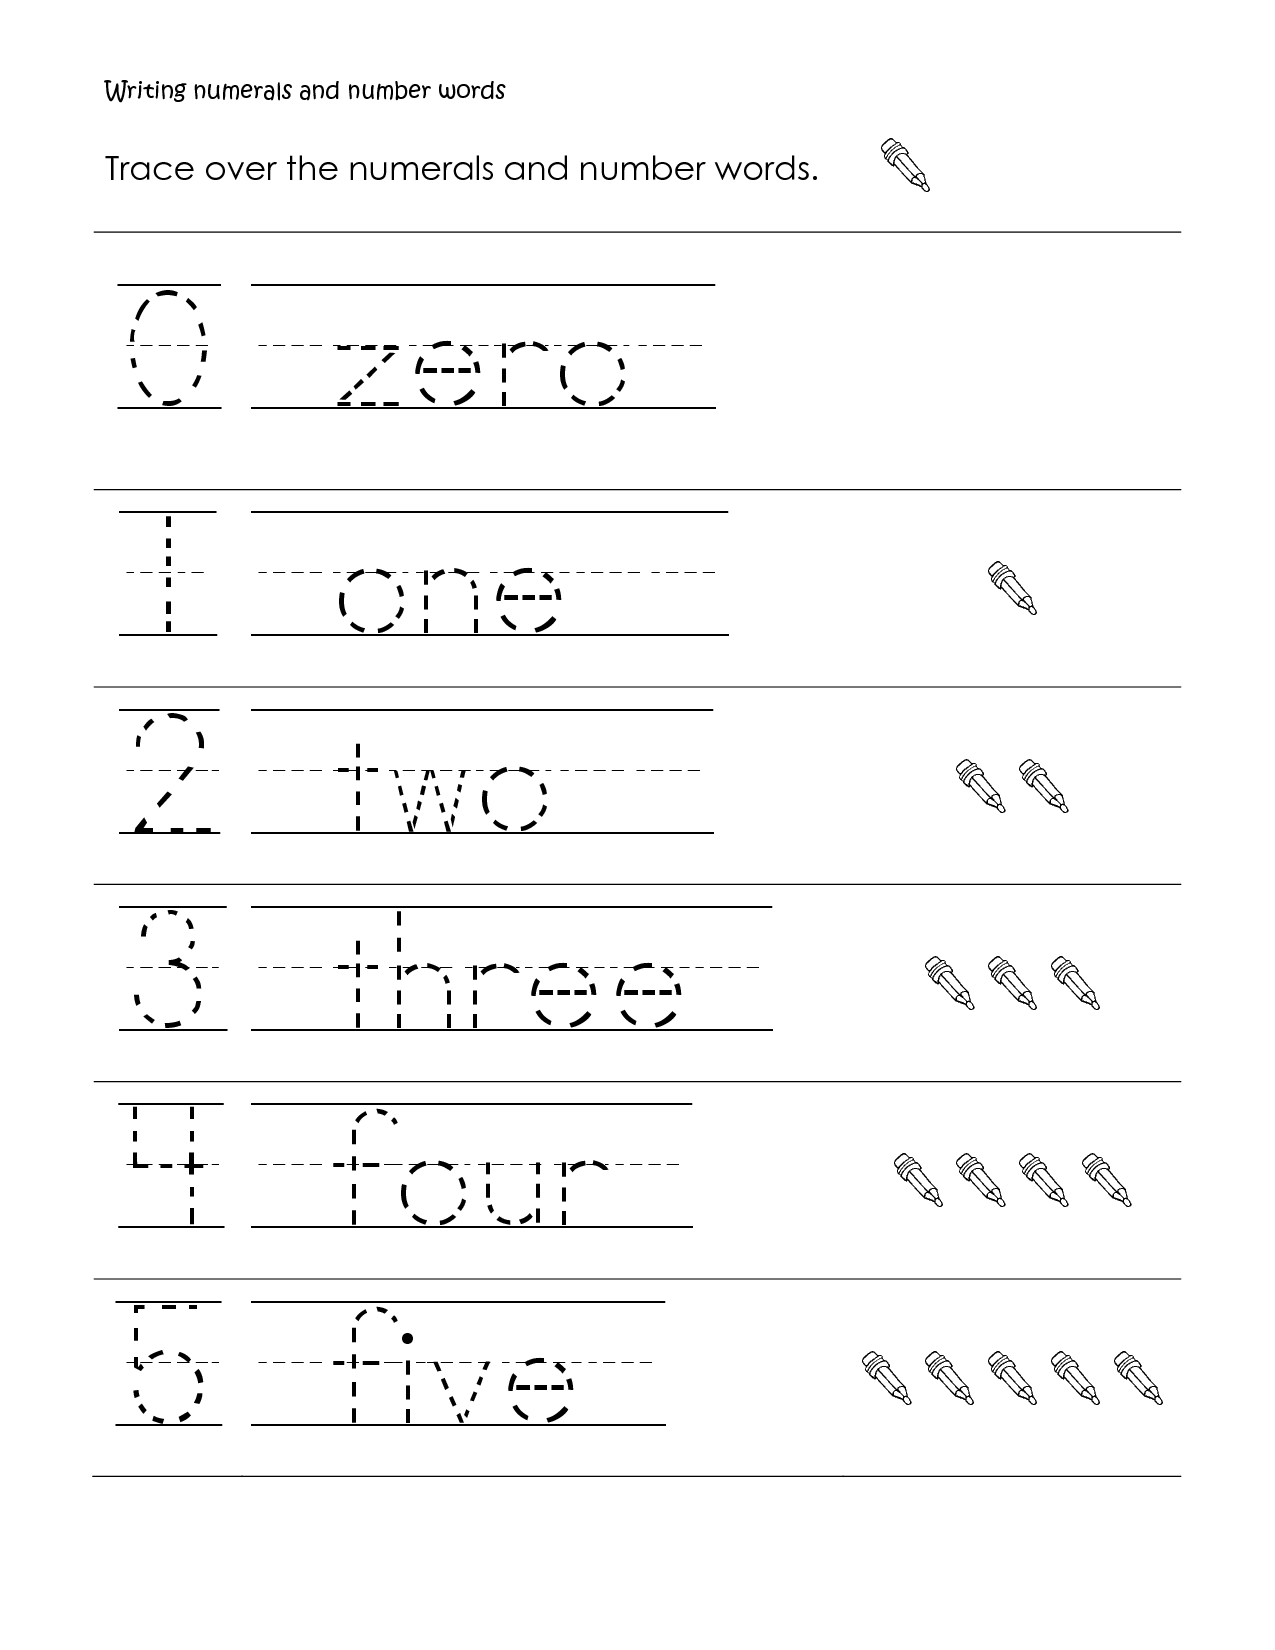 Free handwriting worksheets for kindergarten